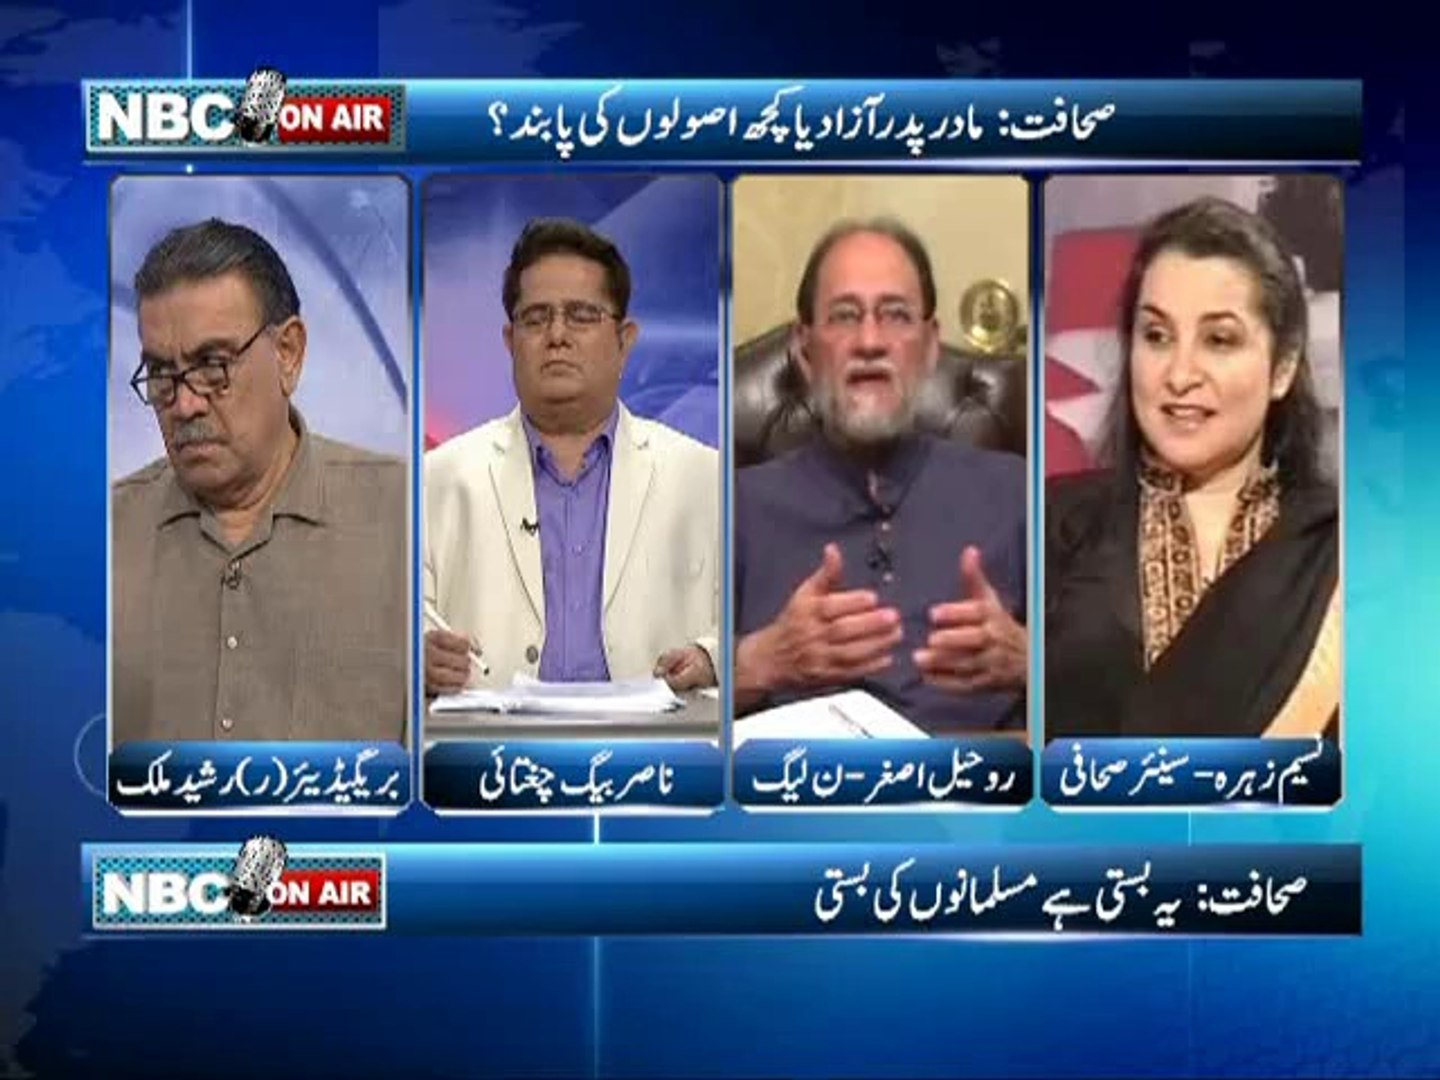 NBC On Air EP 254 (Complete) 24 April 2013-Topic- Distance between Govt and Army, Limits of Freedom